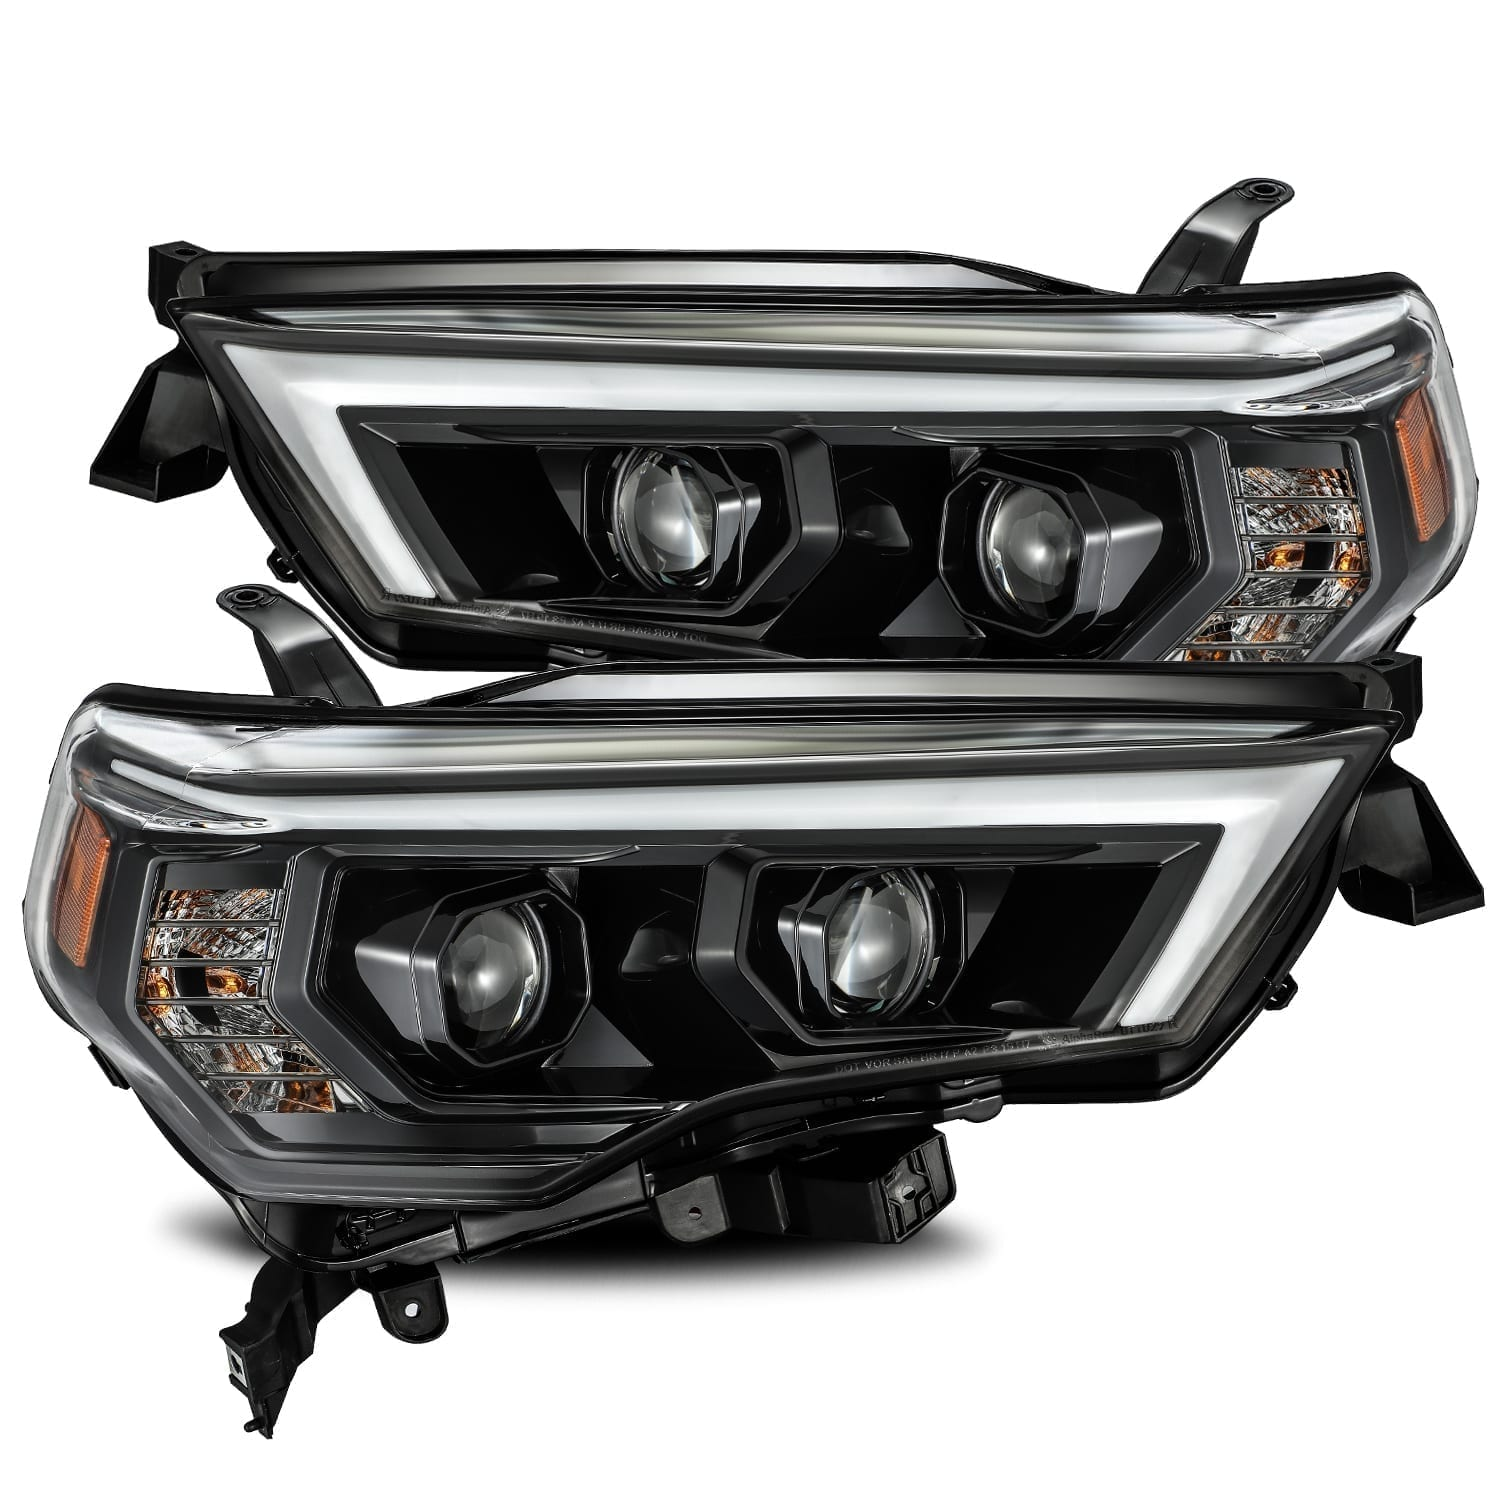 AlphaRex - PRO-Series Projector Headlights Alpha-Black - Toyota 4Runner 5th Gen 2014-2021 - 4x4 Runners